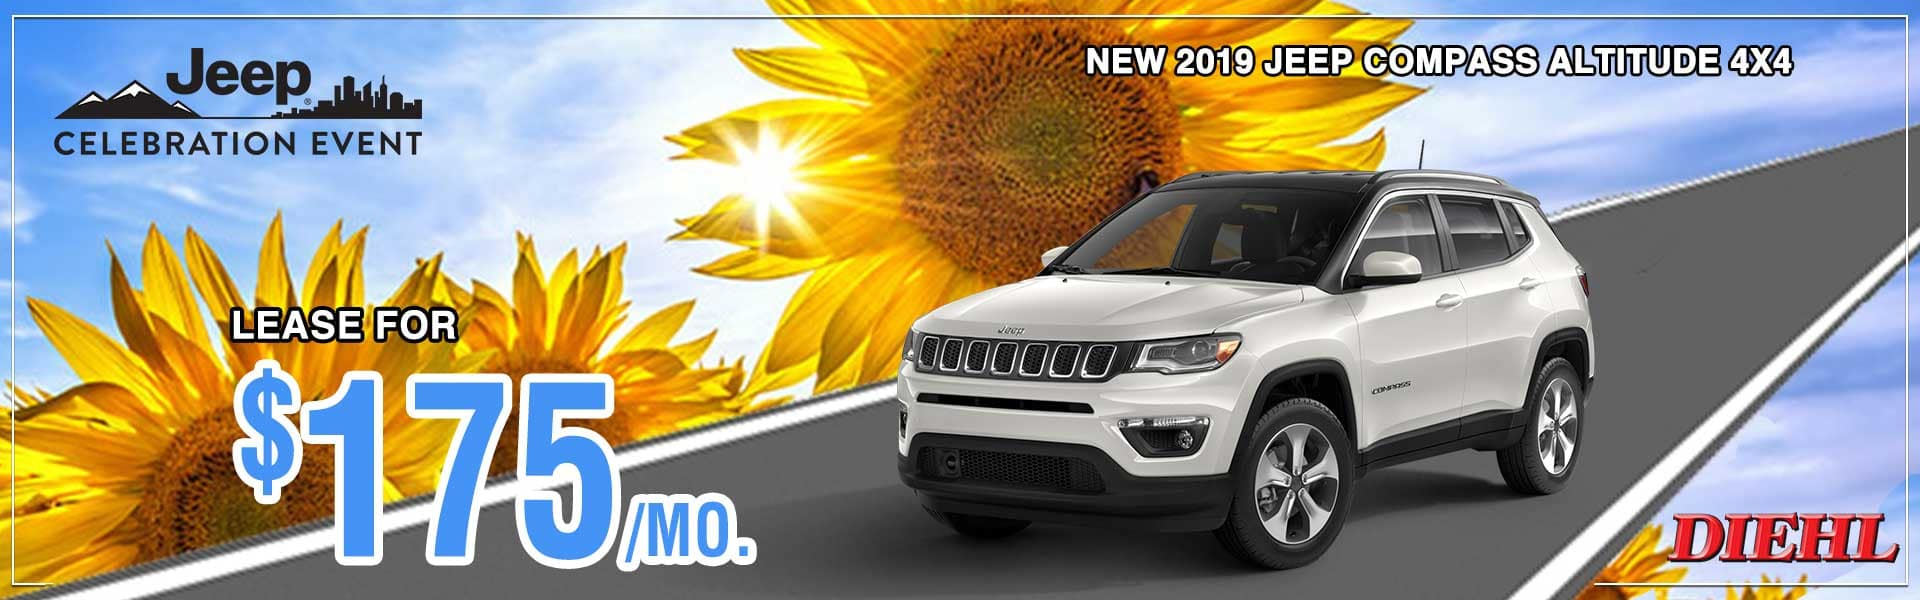 Diehl of Robinson Chrysler Jeep Dodge Ram. Robinson Township, PA 15136. New and used sales, service for all makes and models, parts, accessories, Mopar, collision center body shop. 2019 JEEP COMPASS ALTITUDE